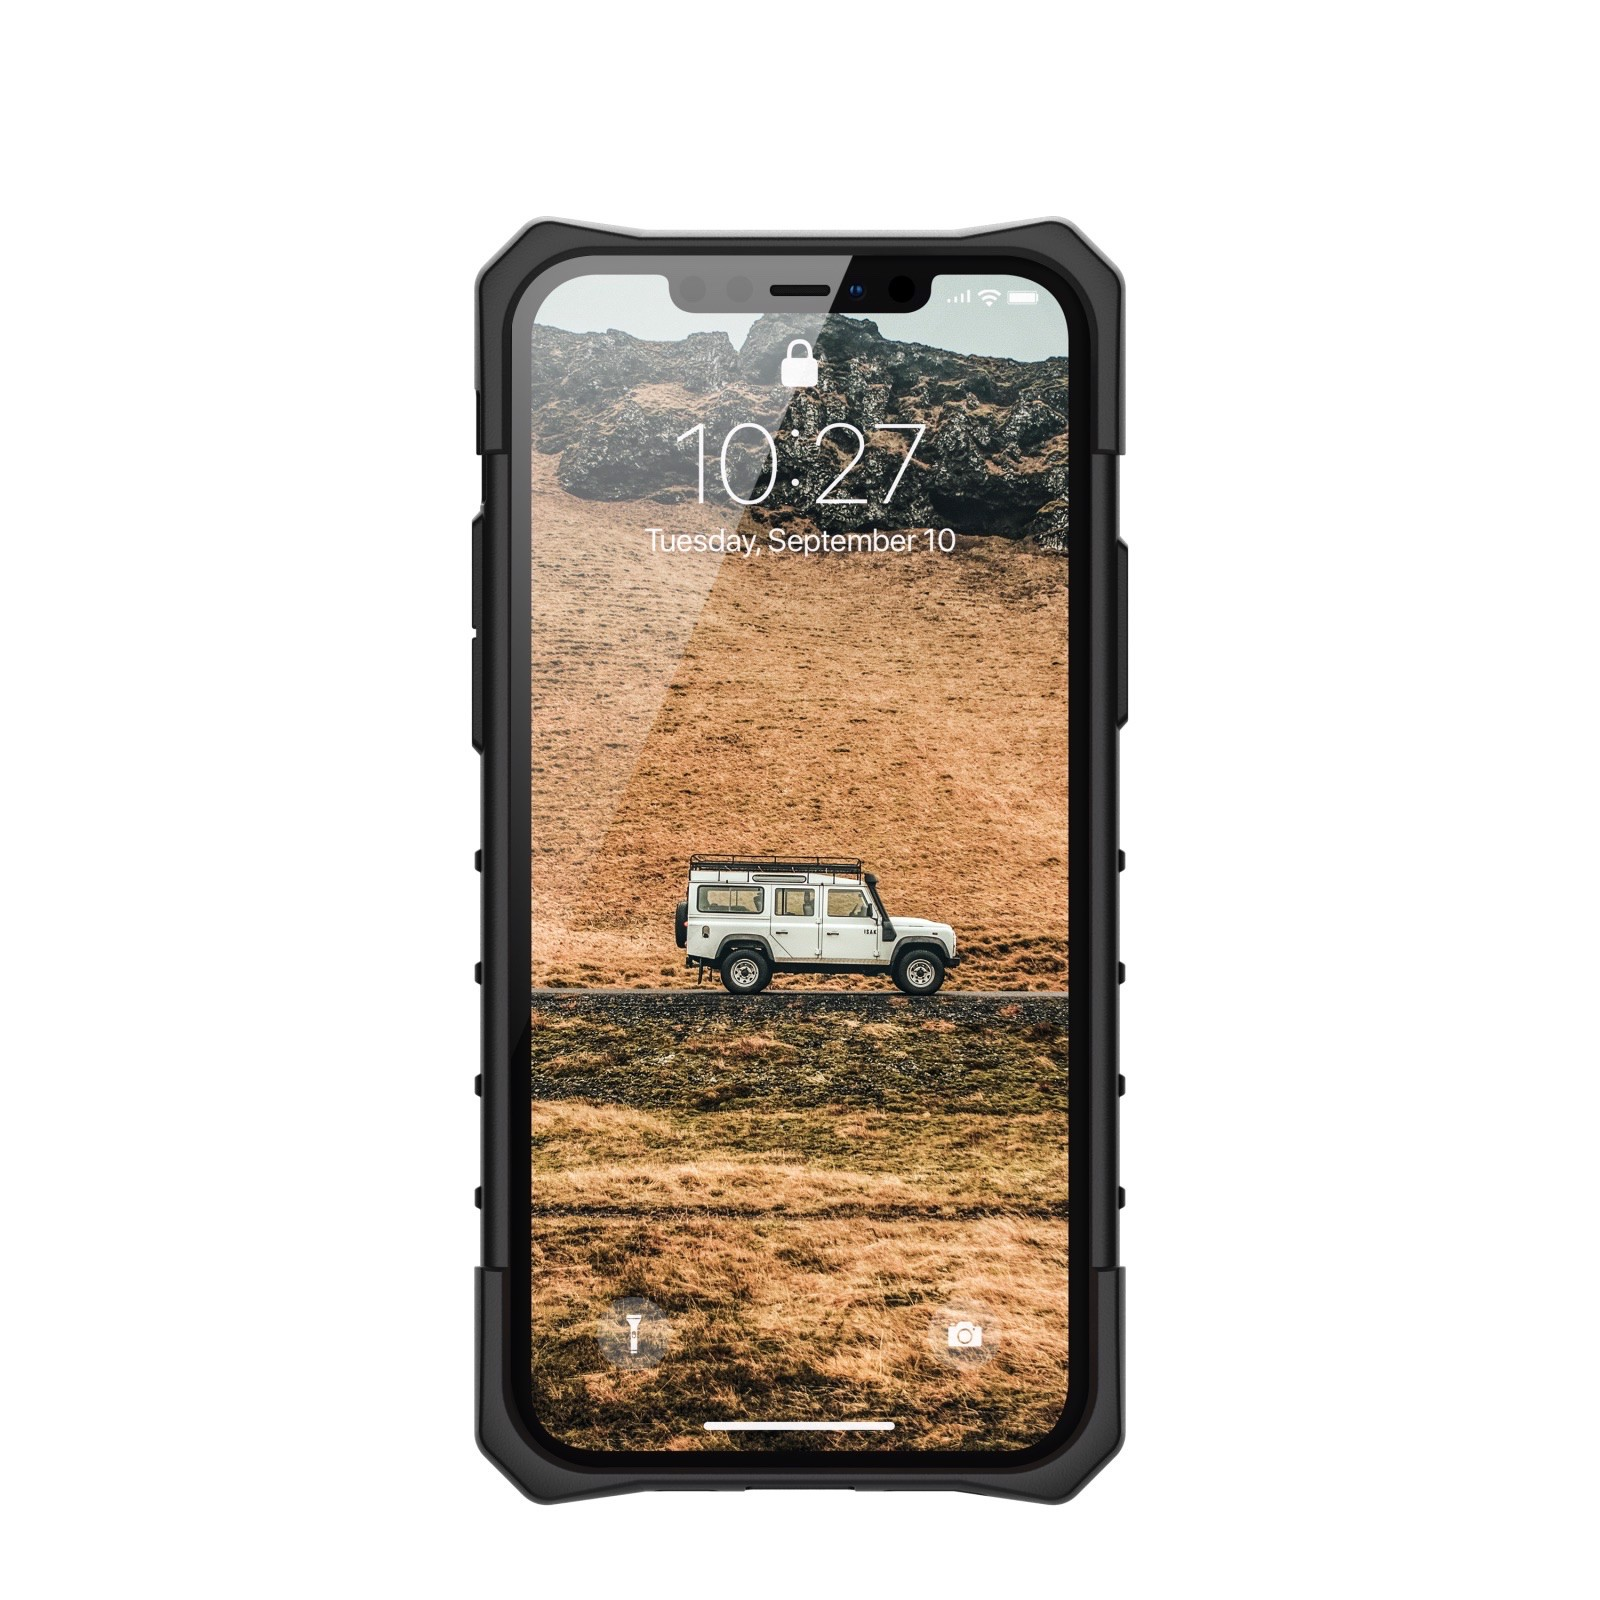 ỐP LƯNG UAG PATHFINDER SE  CHO IPHONE 12 [6.1-INCH] - Midnight Camo